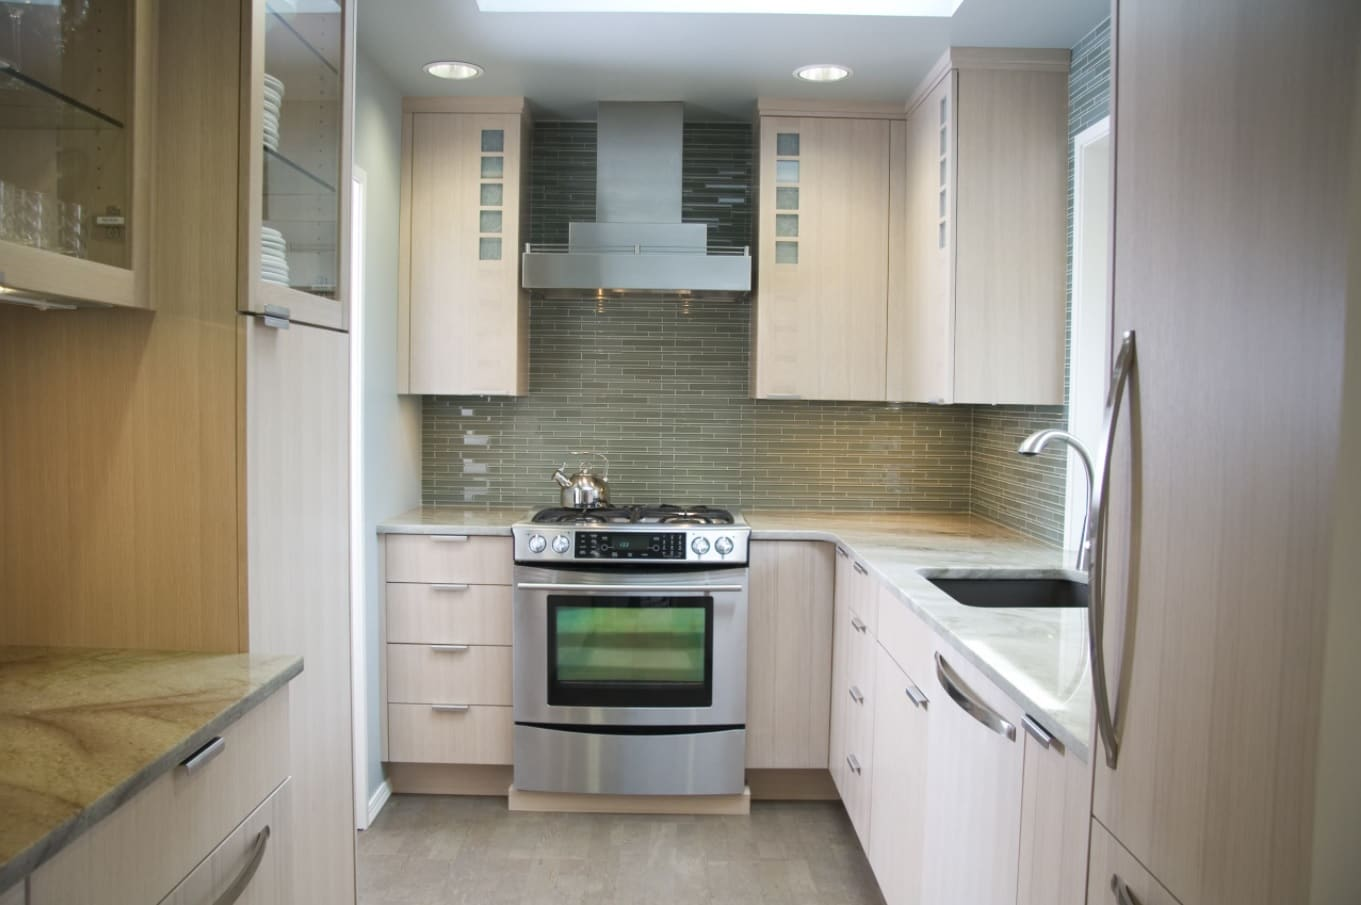 What Separates A Kitchen From A Kitchenette? Small casual styled space with alder wooden facades of the furniture